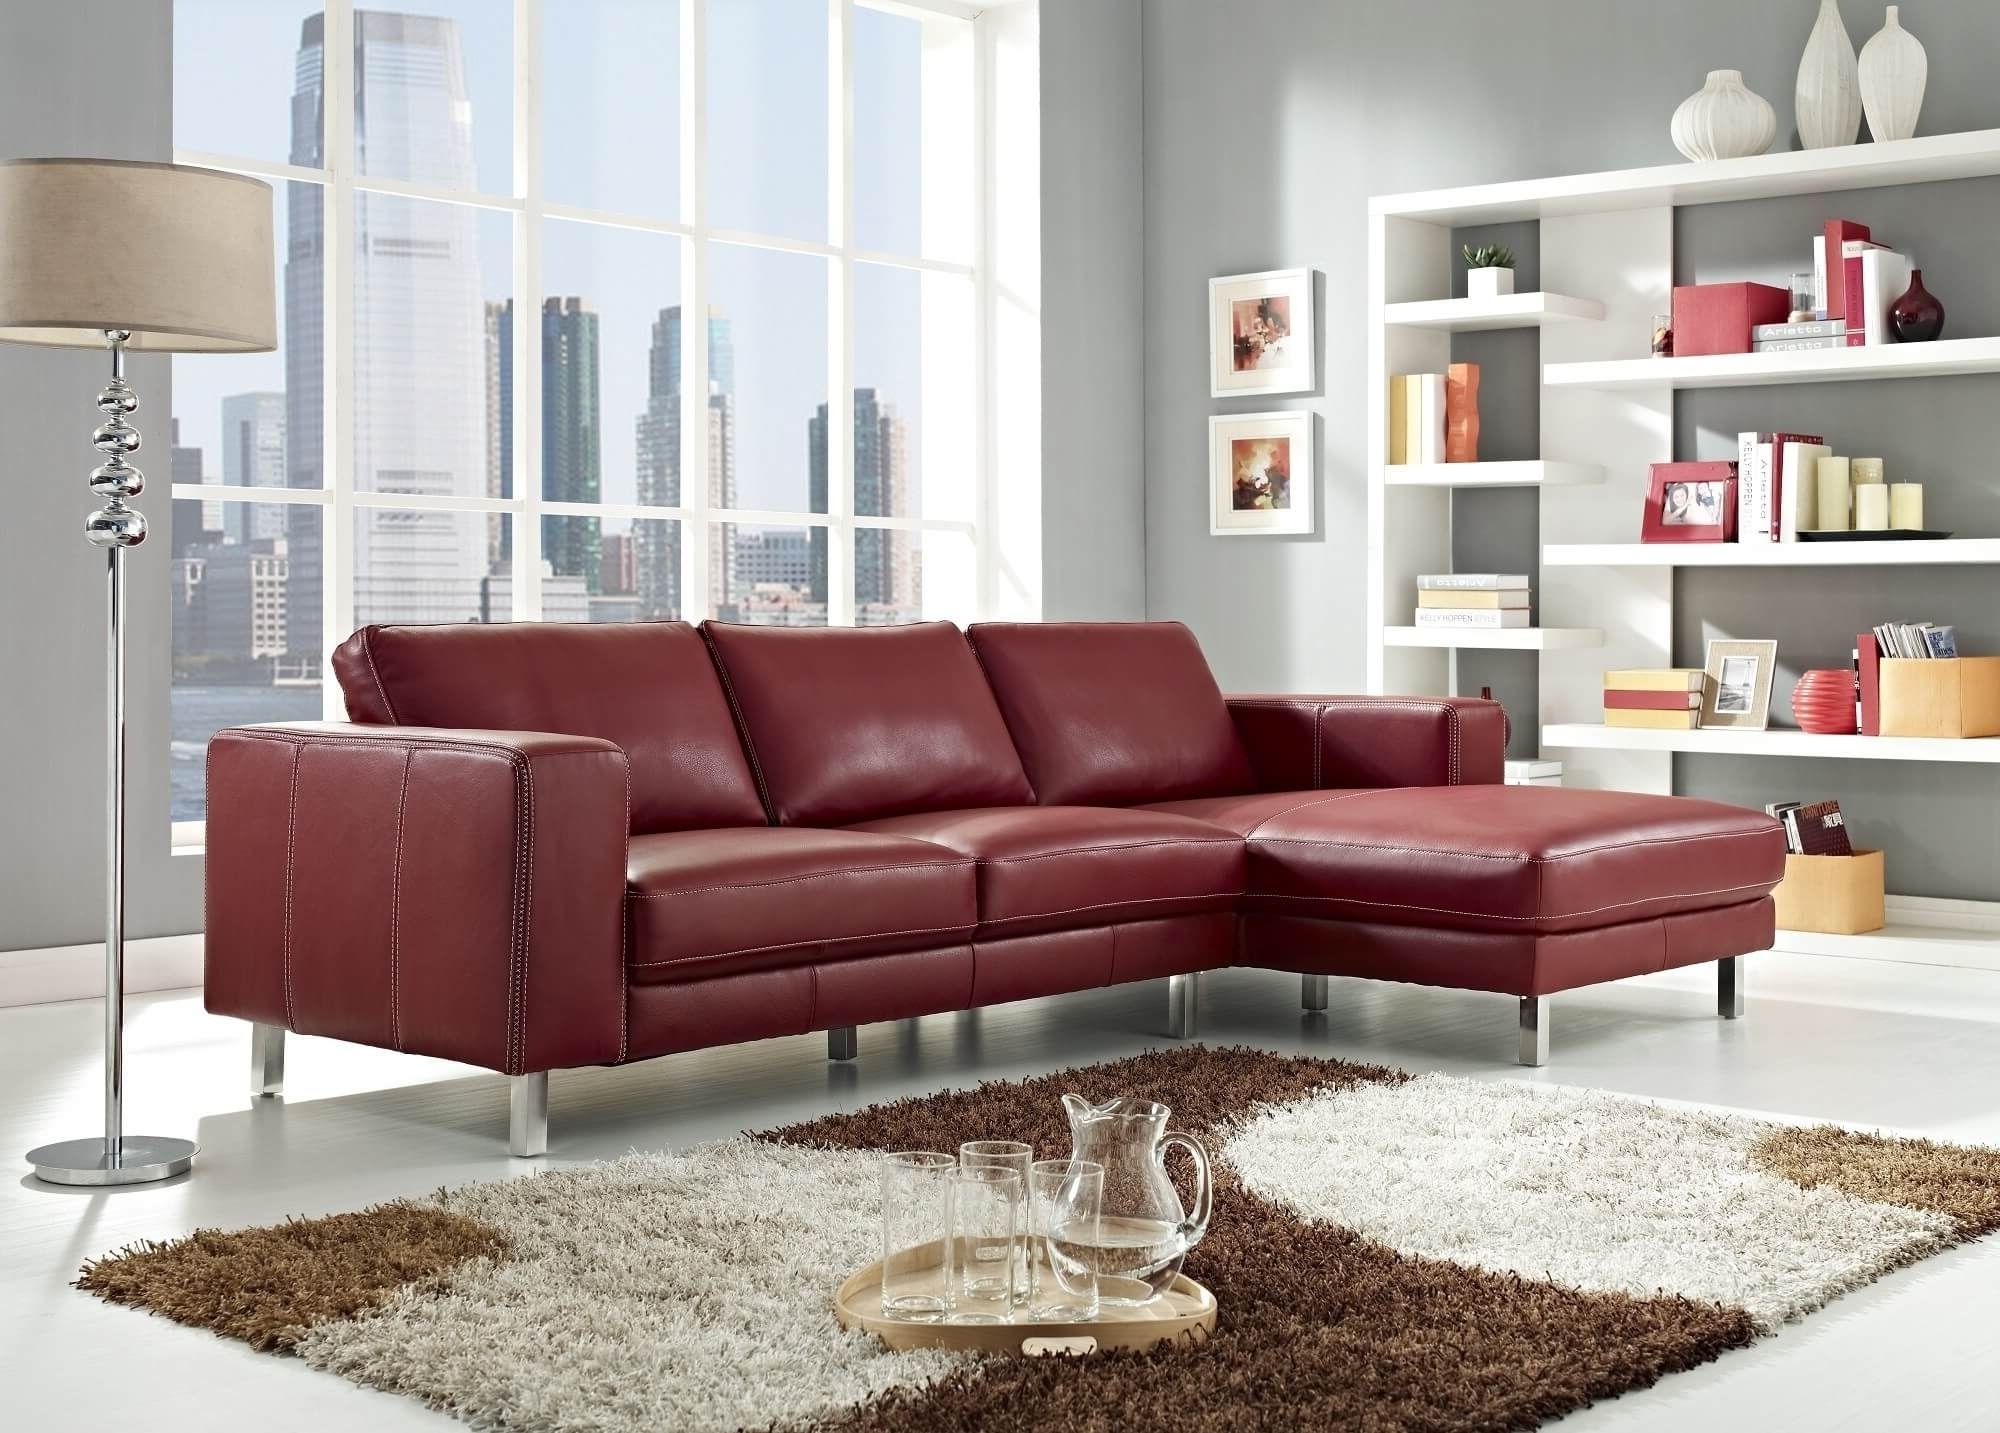 Small Red Leather Sectional Sofas Throughout Most Up To Date Stylish Modern Red Sectional Sofas (View 9 of 20)